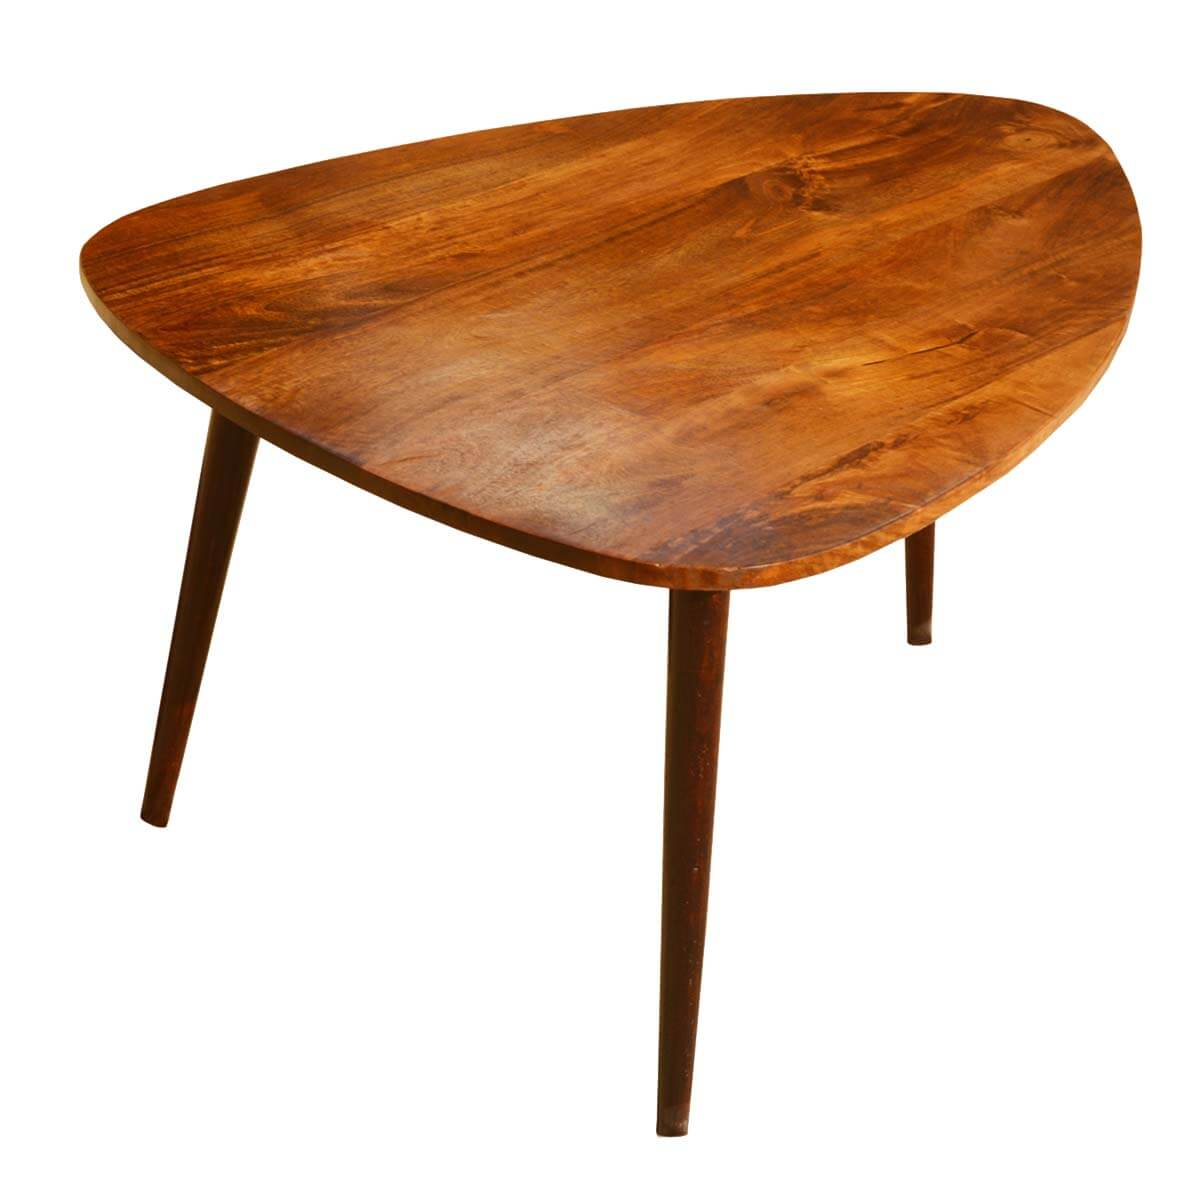 Arrowhead Mango Wood Triangular Coffee Table